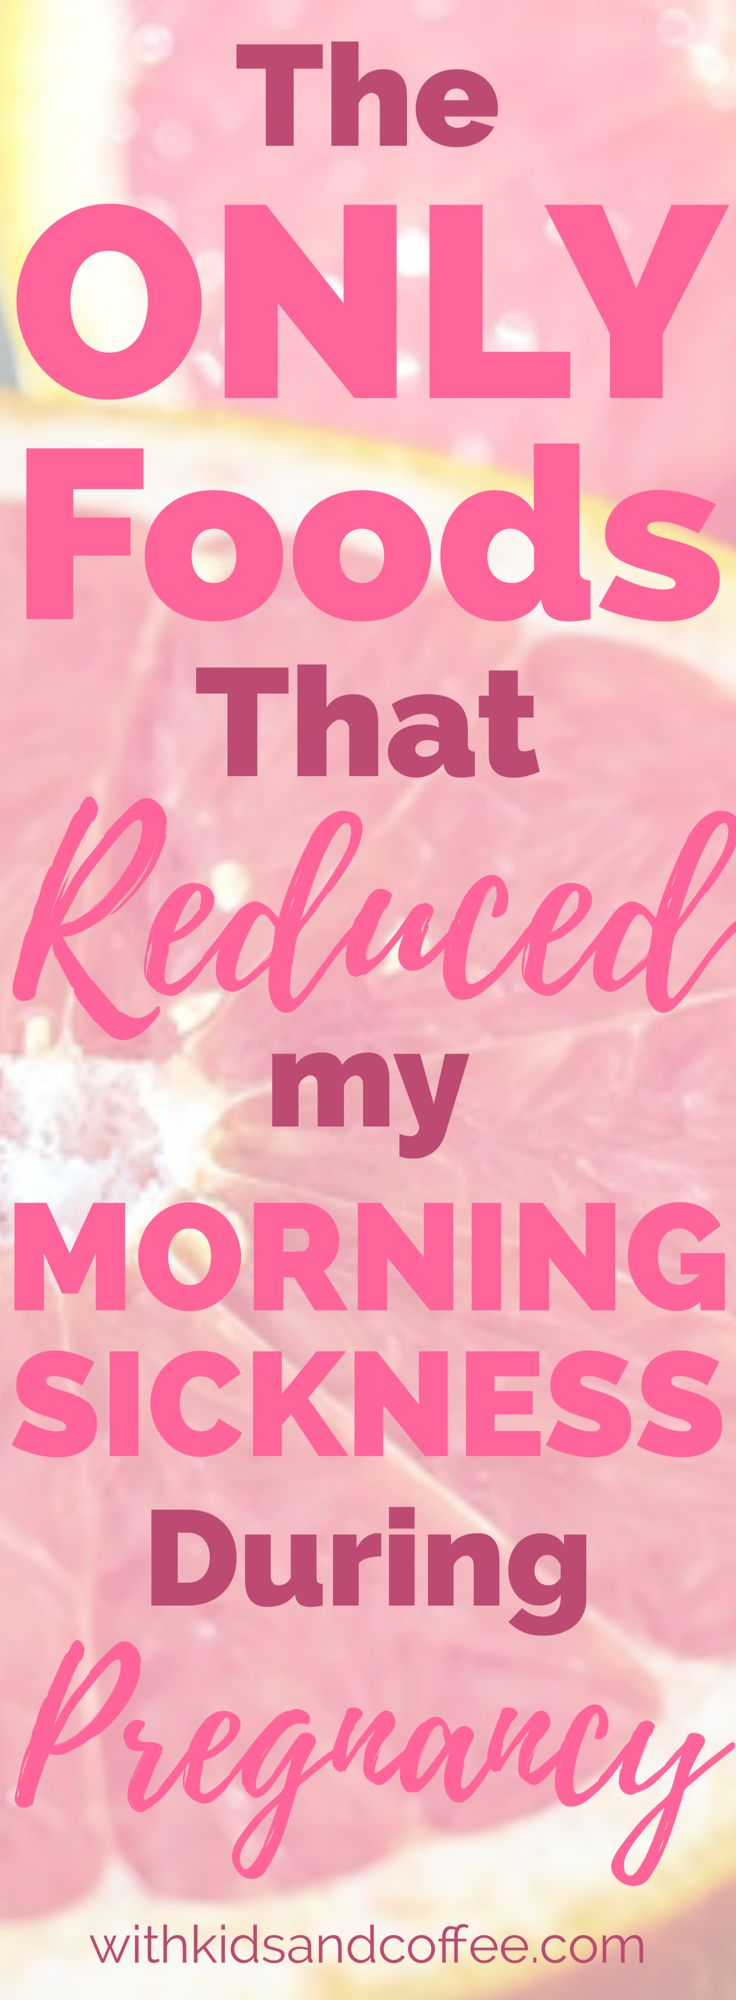 Best 25+ Pregnancy morning sickness ideas on Pinterest ...